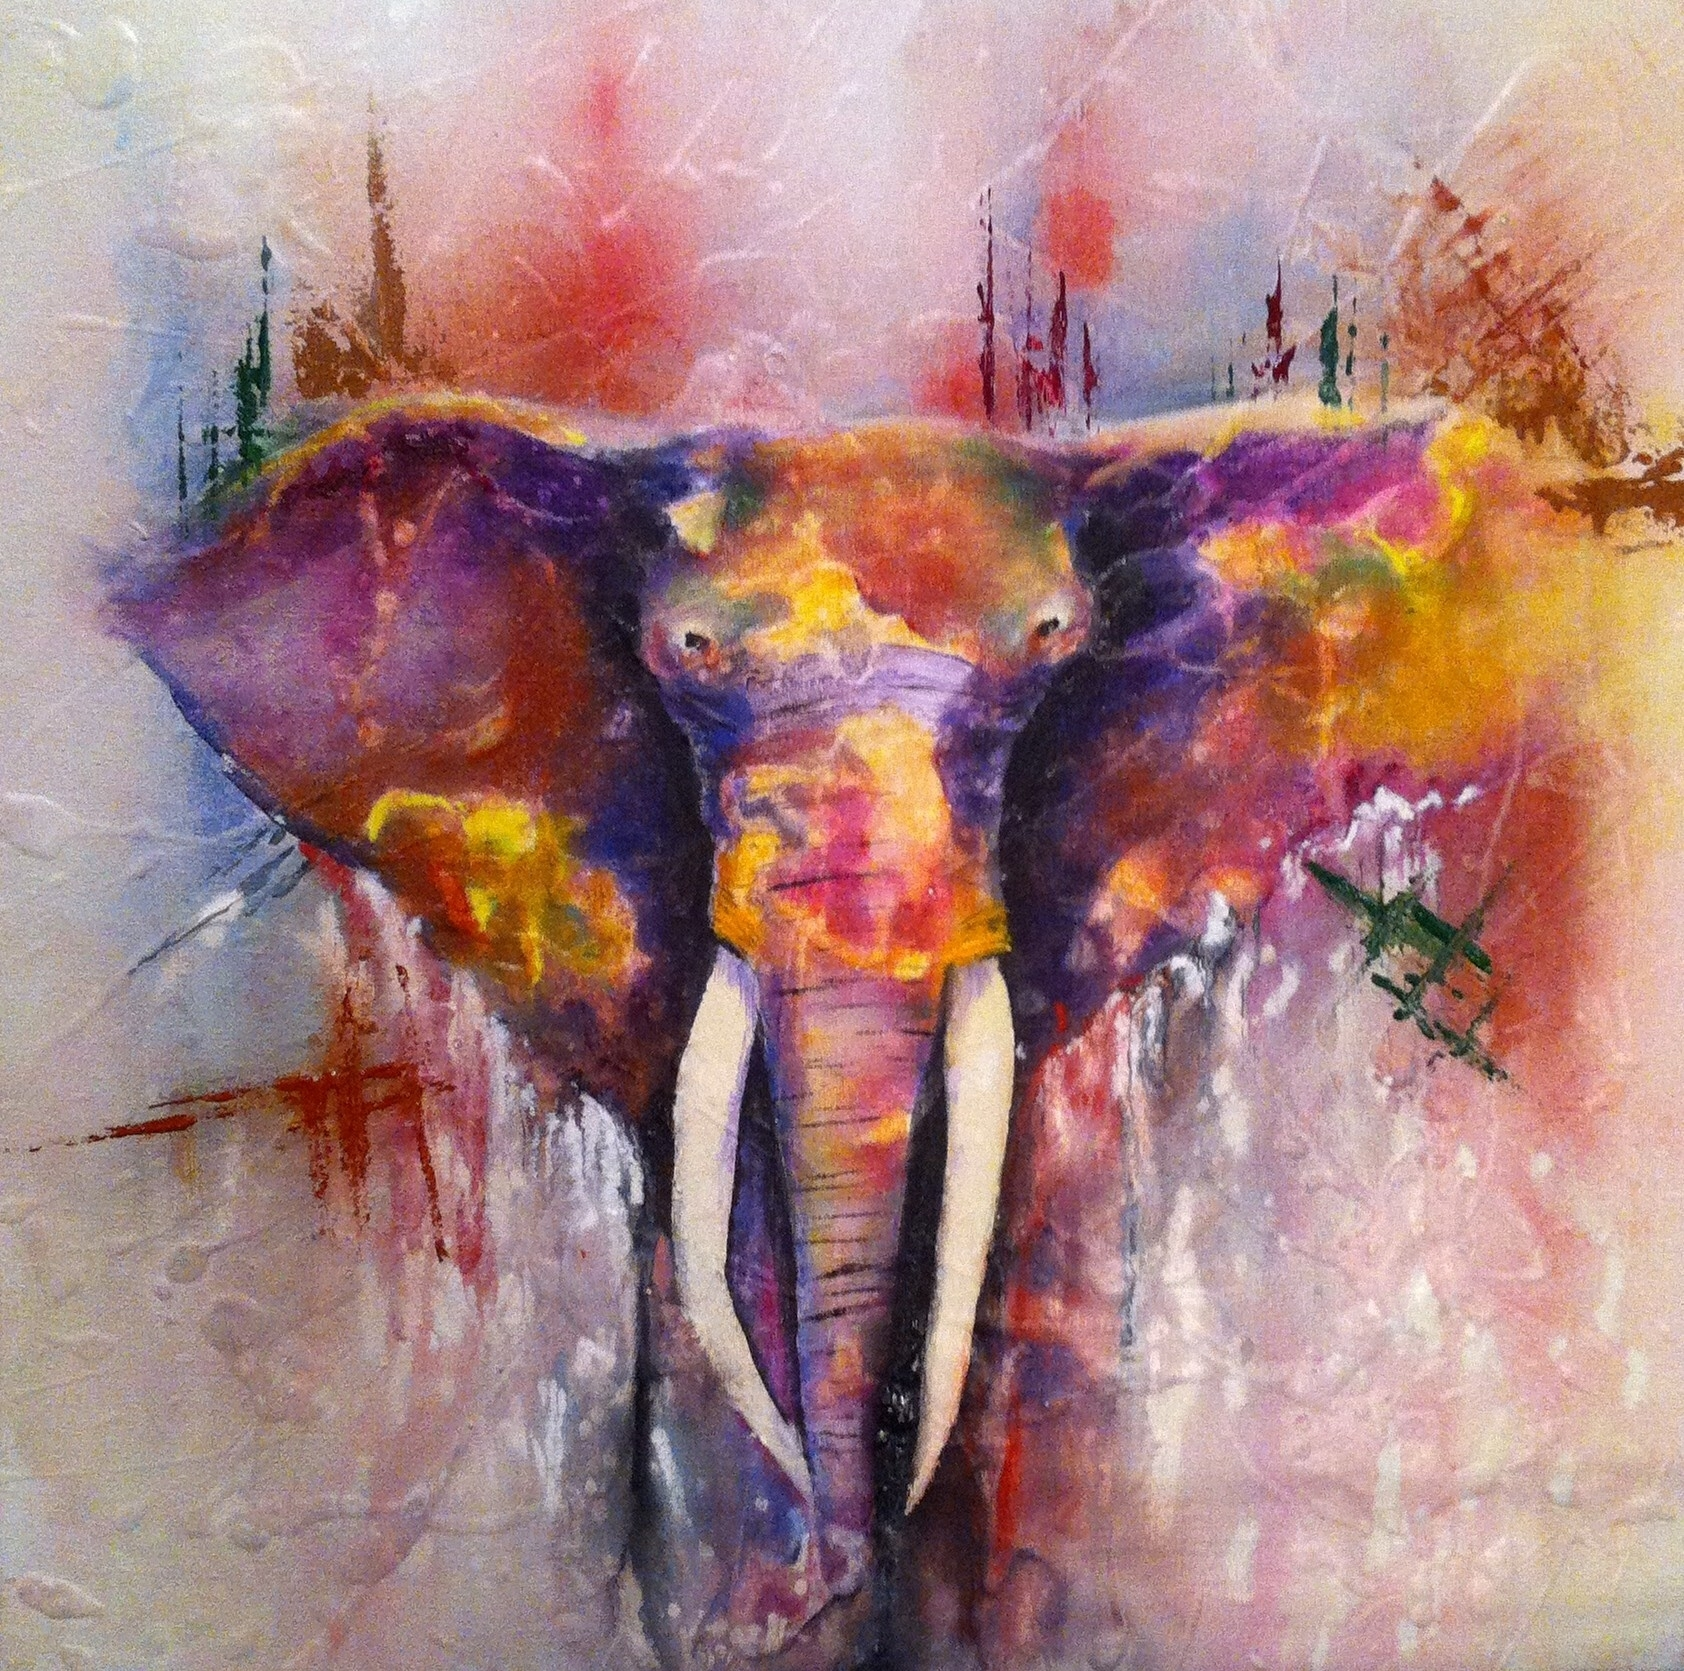 Wall Art Designs: Elephant Canvas Wall Art Abstract Elephant With Most Popular Abstract Elephant Wall Art (View 20 of 20)